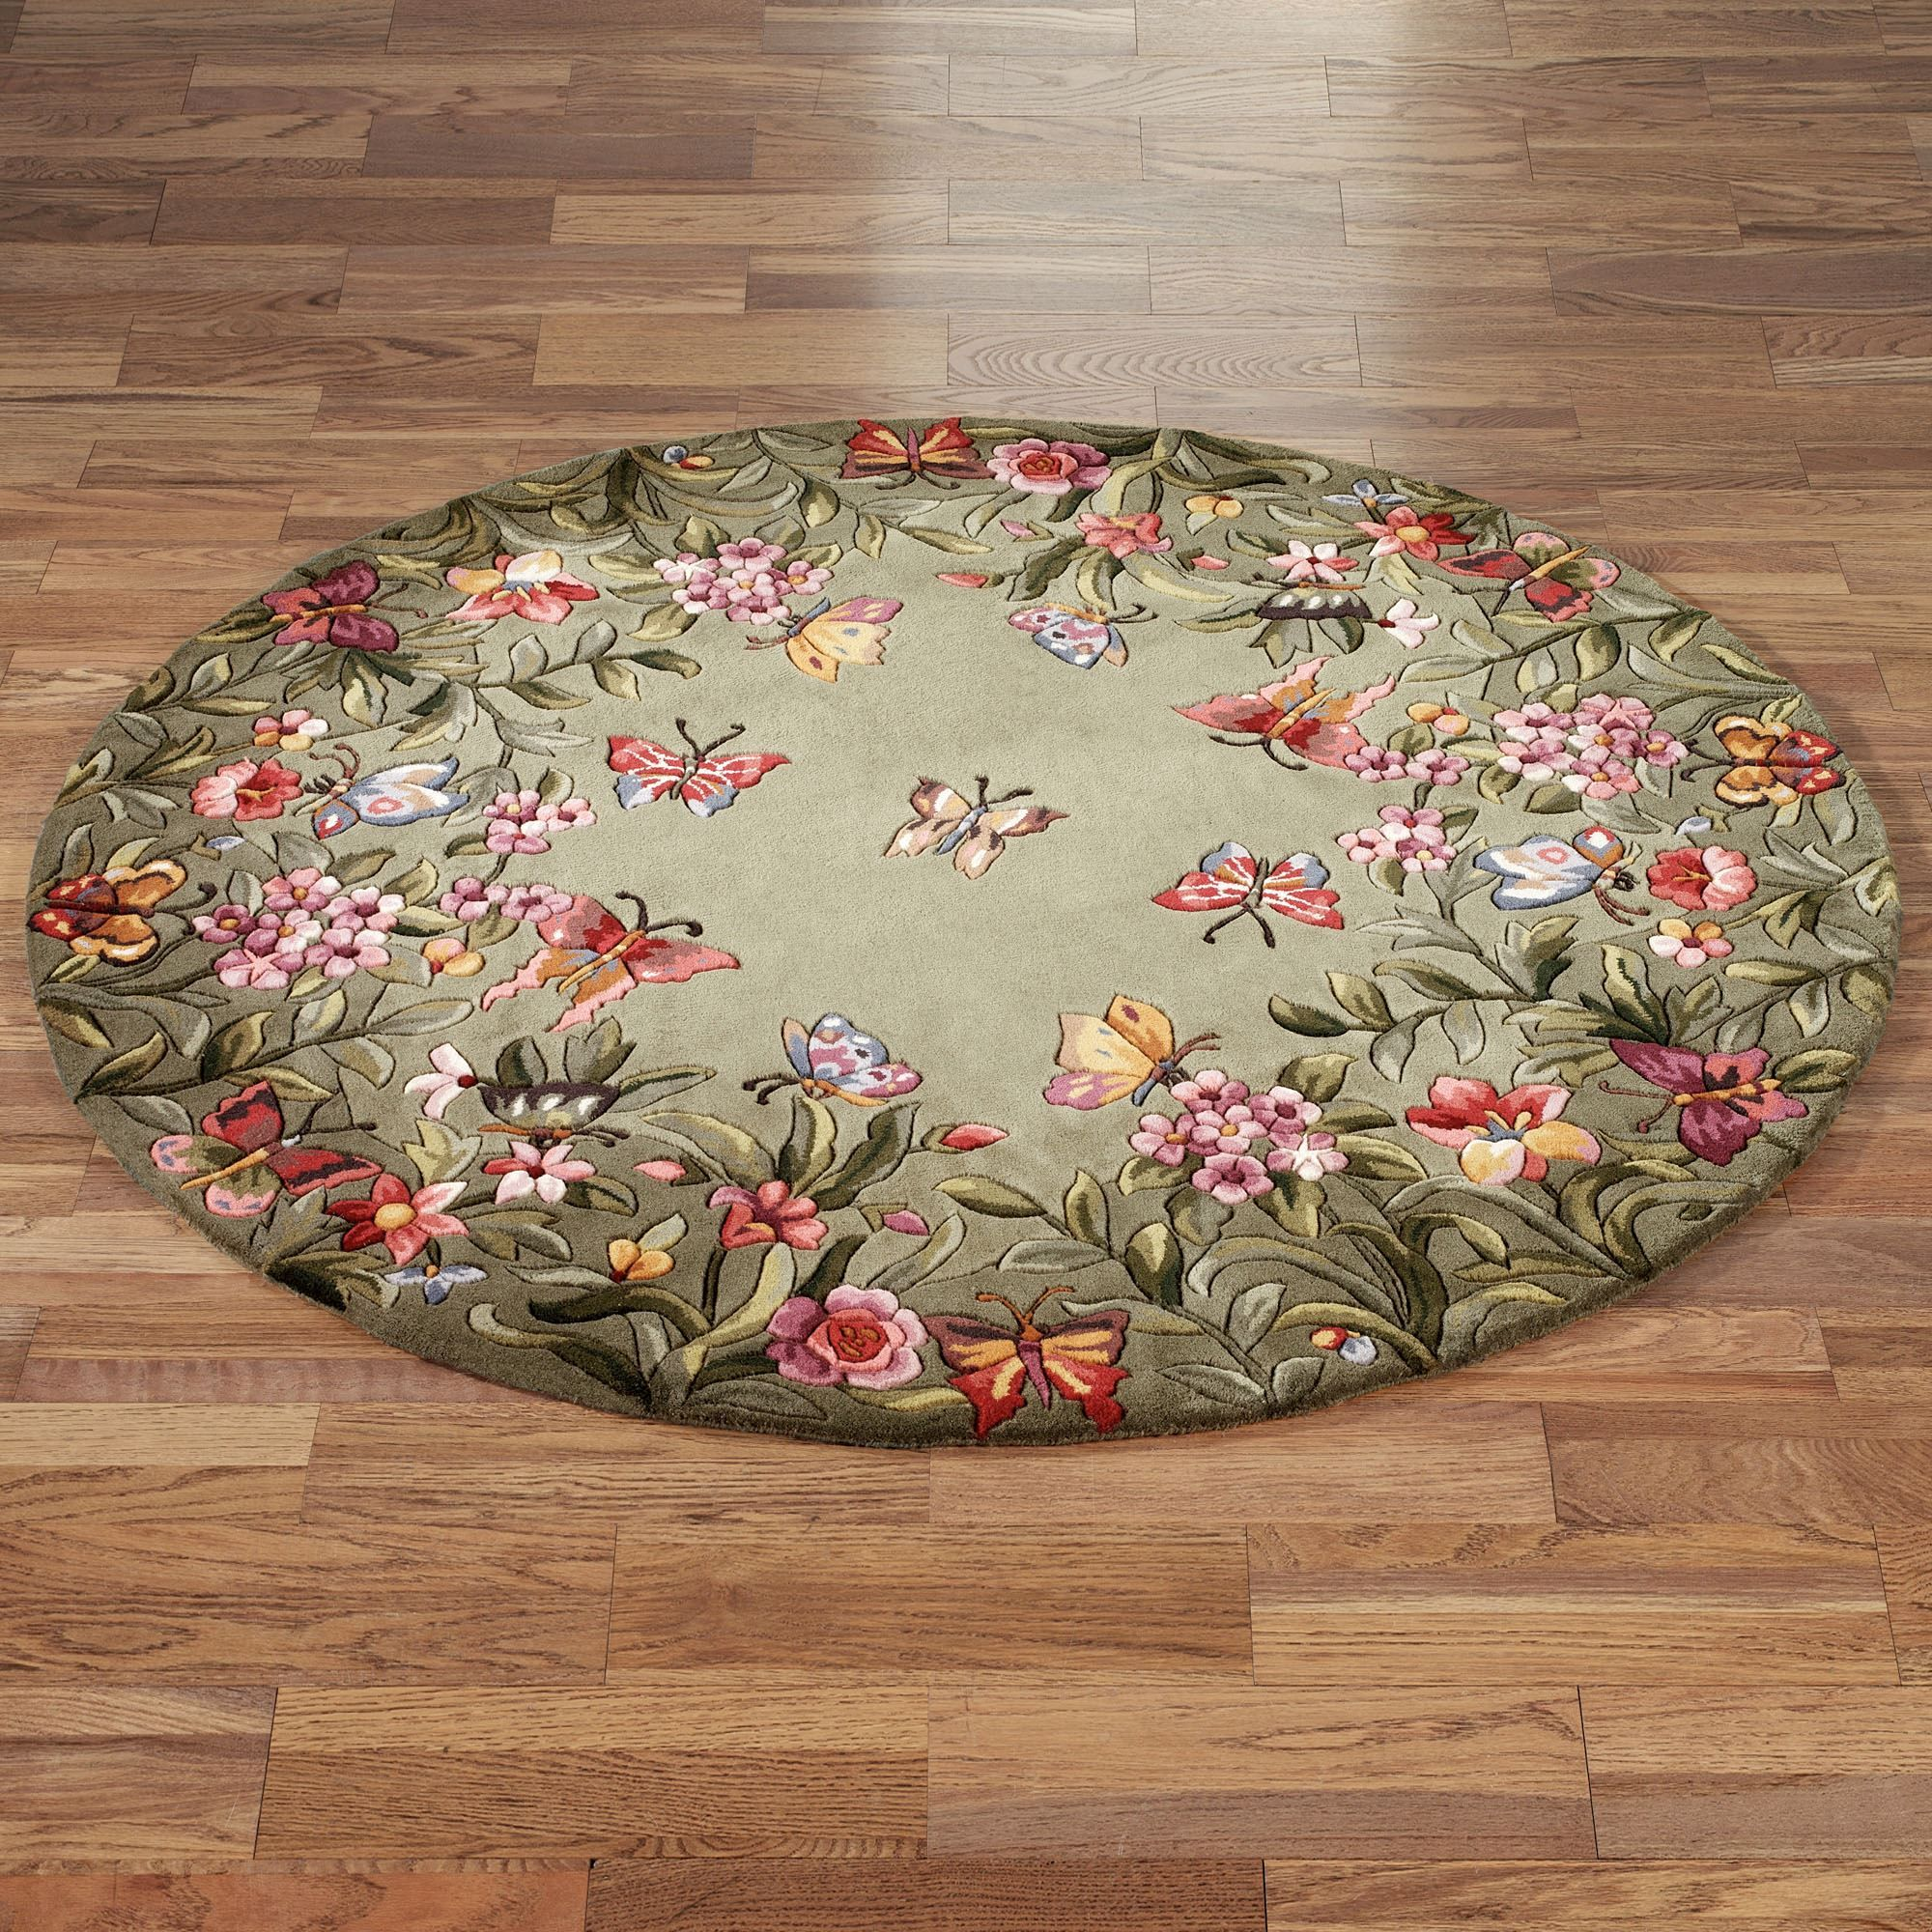 blue rugs idea interesting your brown ideas full foot charming floor cheap natural fabulous rug size jute decor round area walmart for cleaners in amazing of